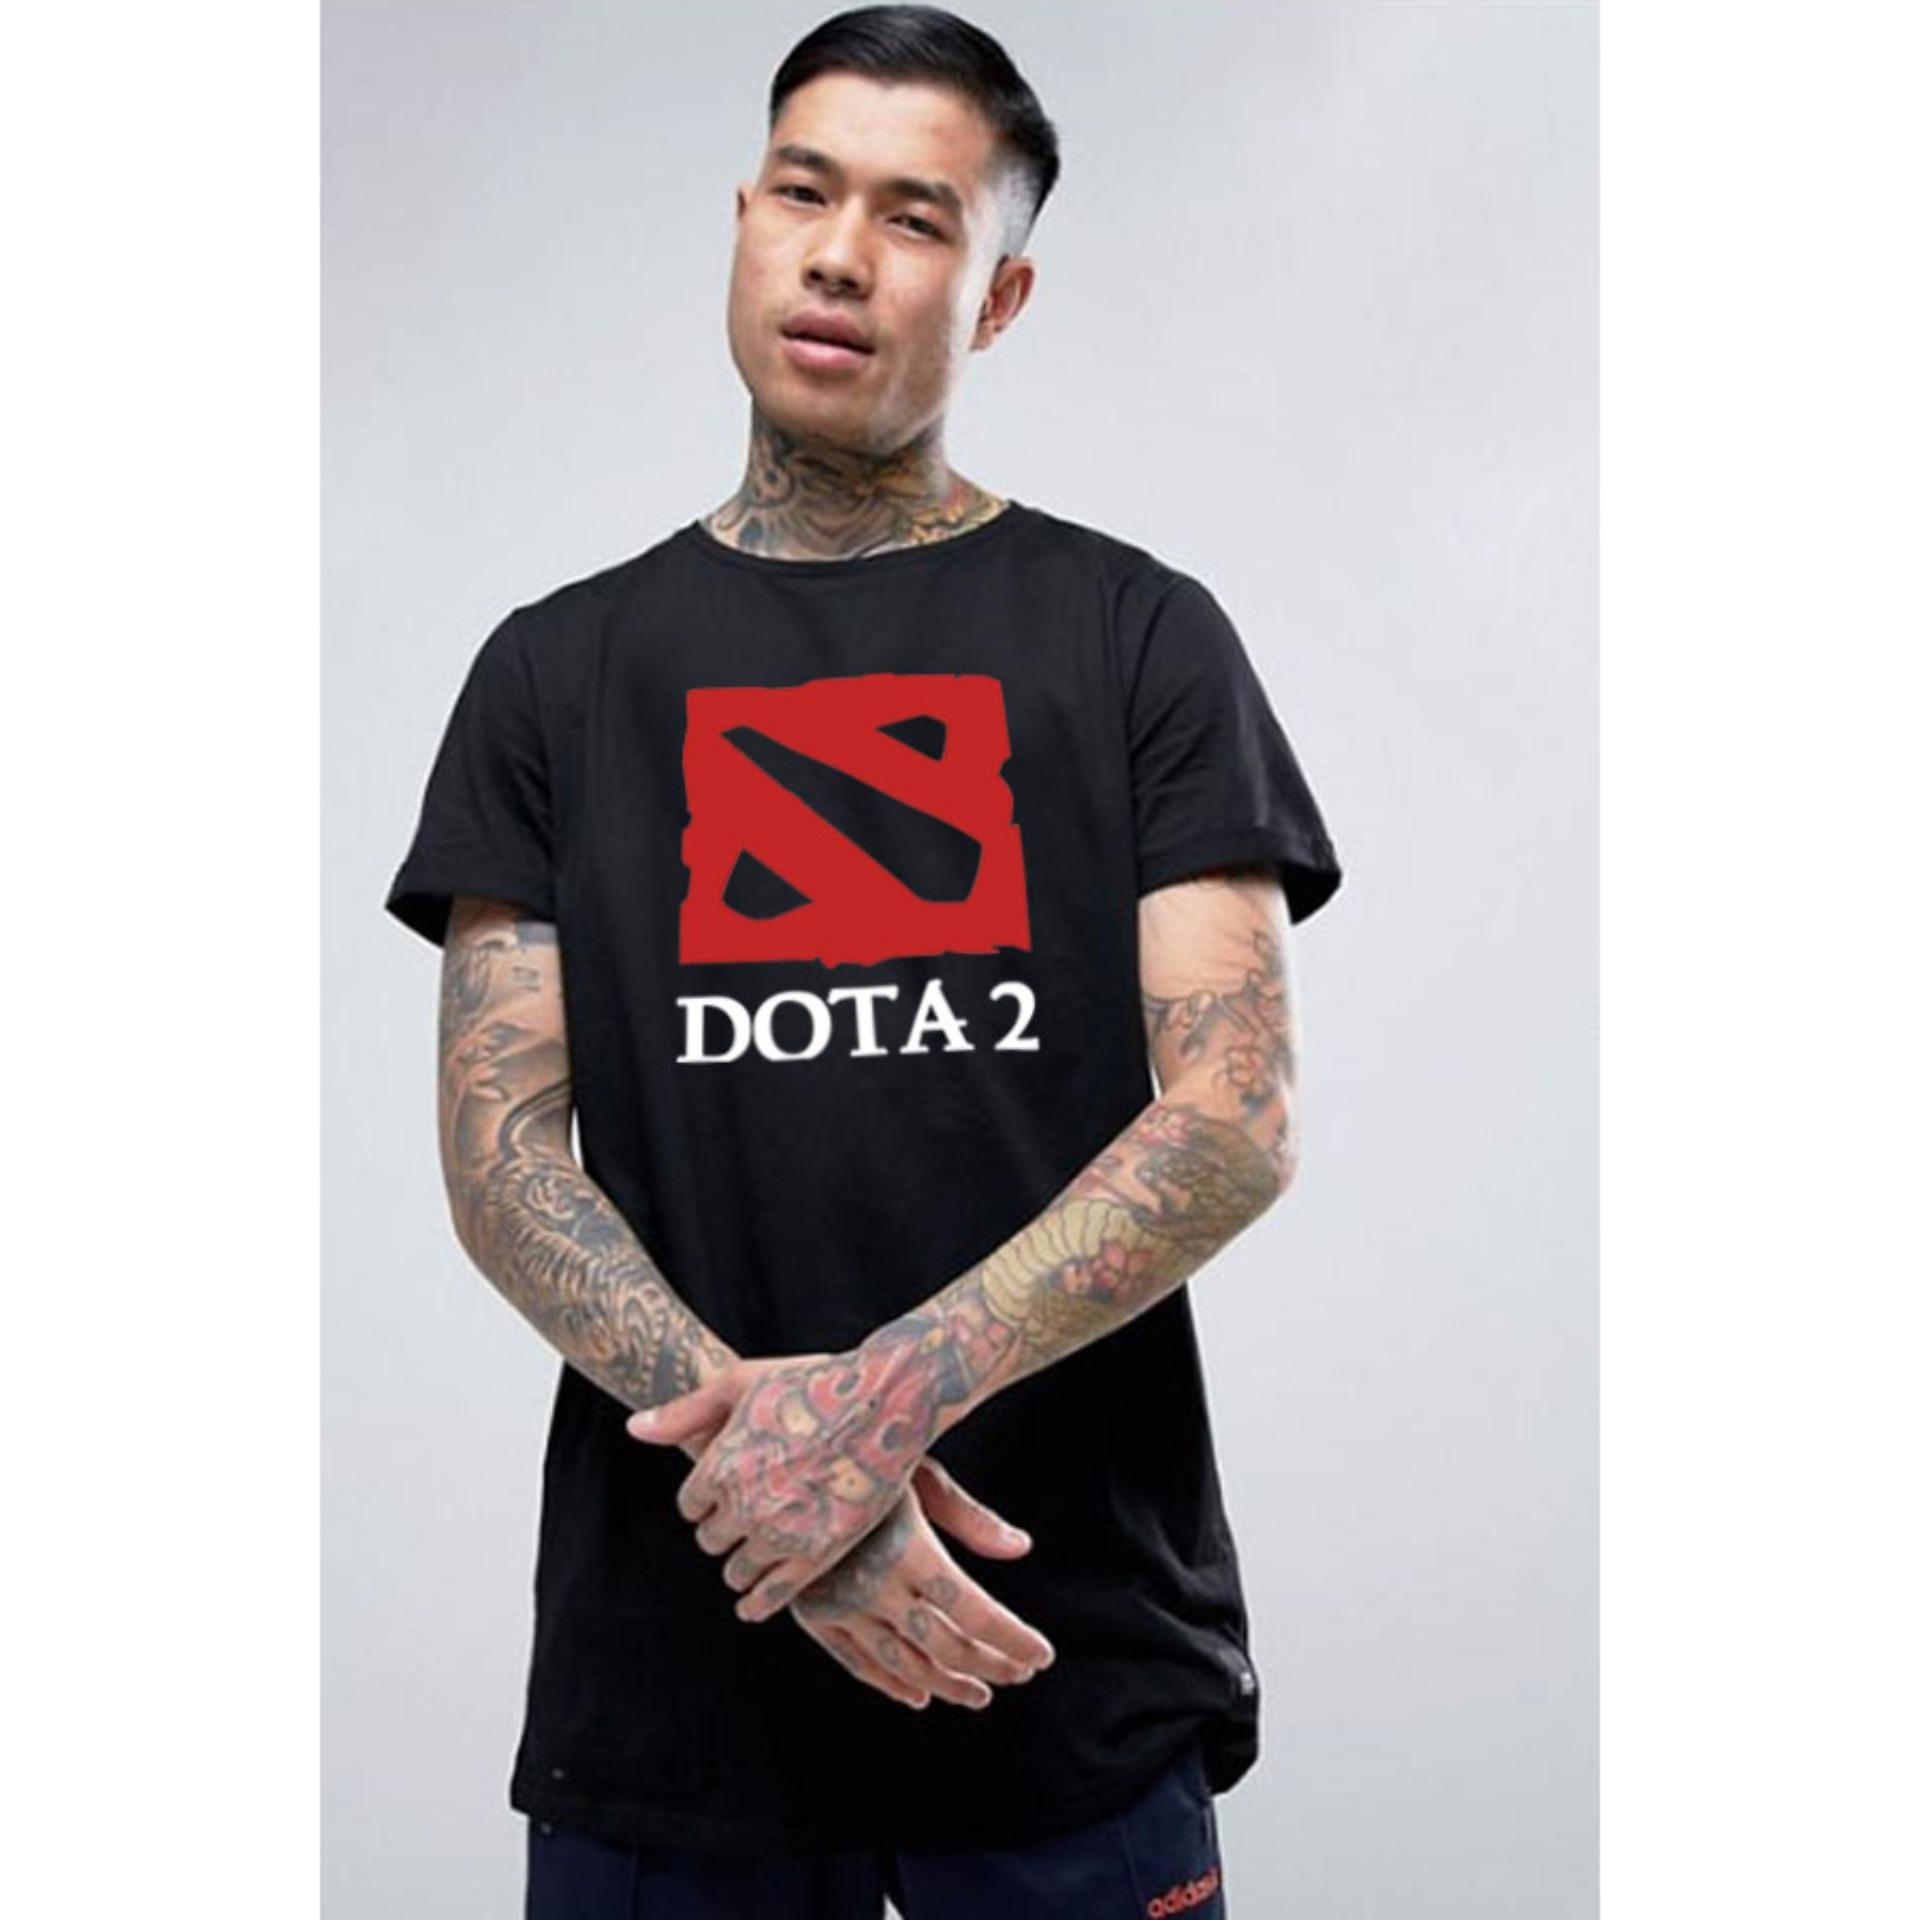 Jual Just Cloth Kaos Gaming Dota 2 Hitam Antik